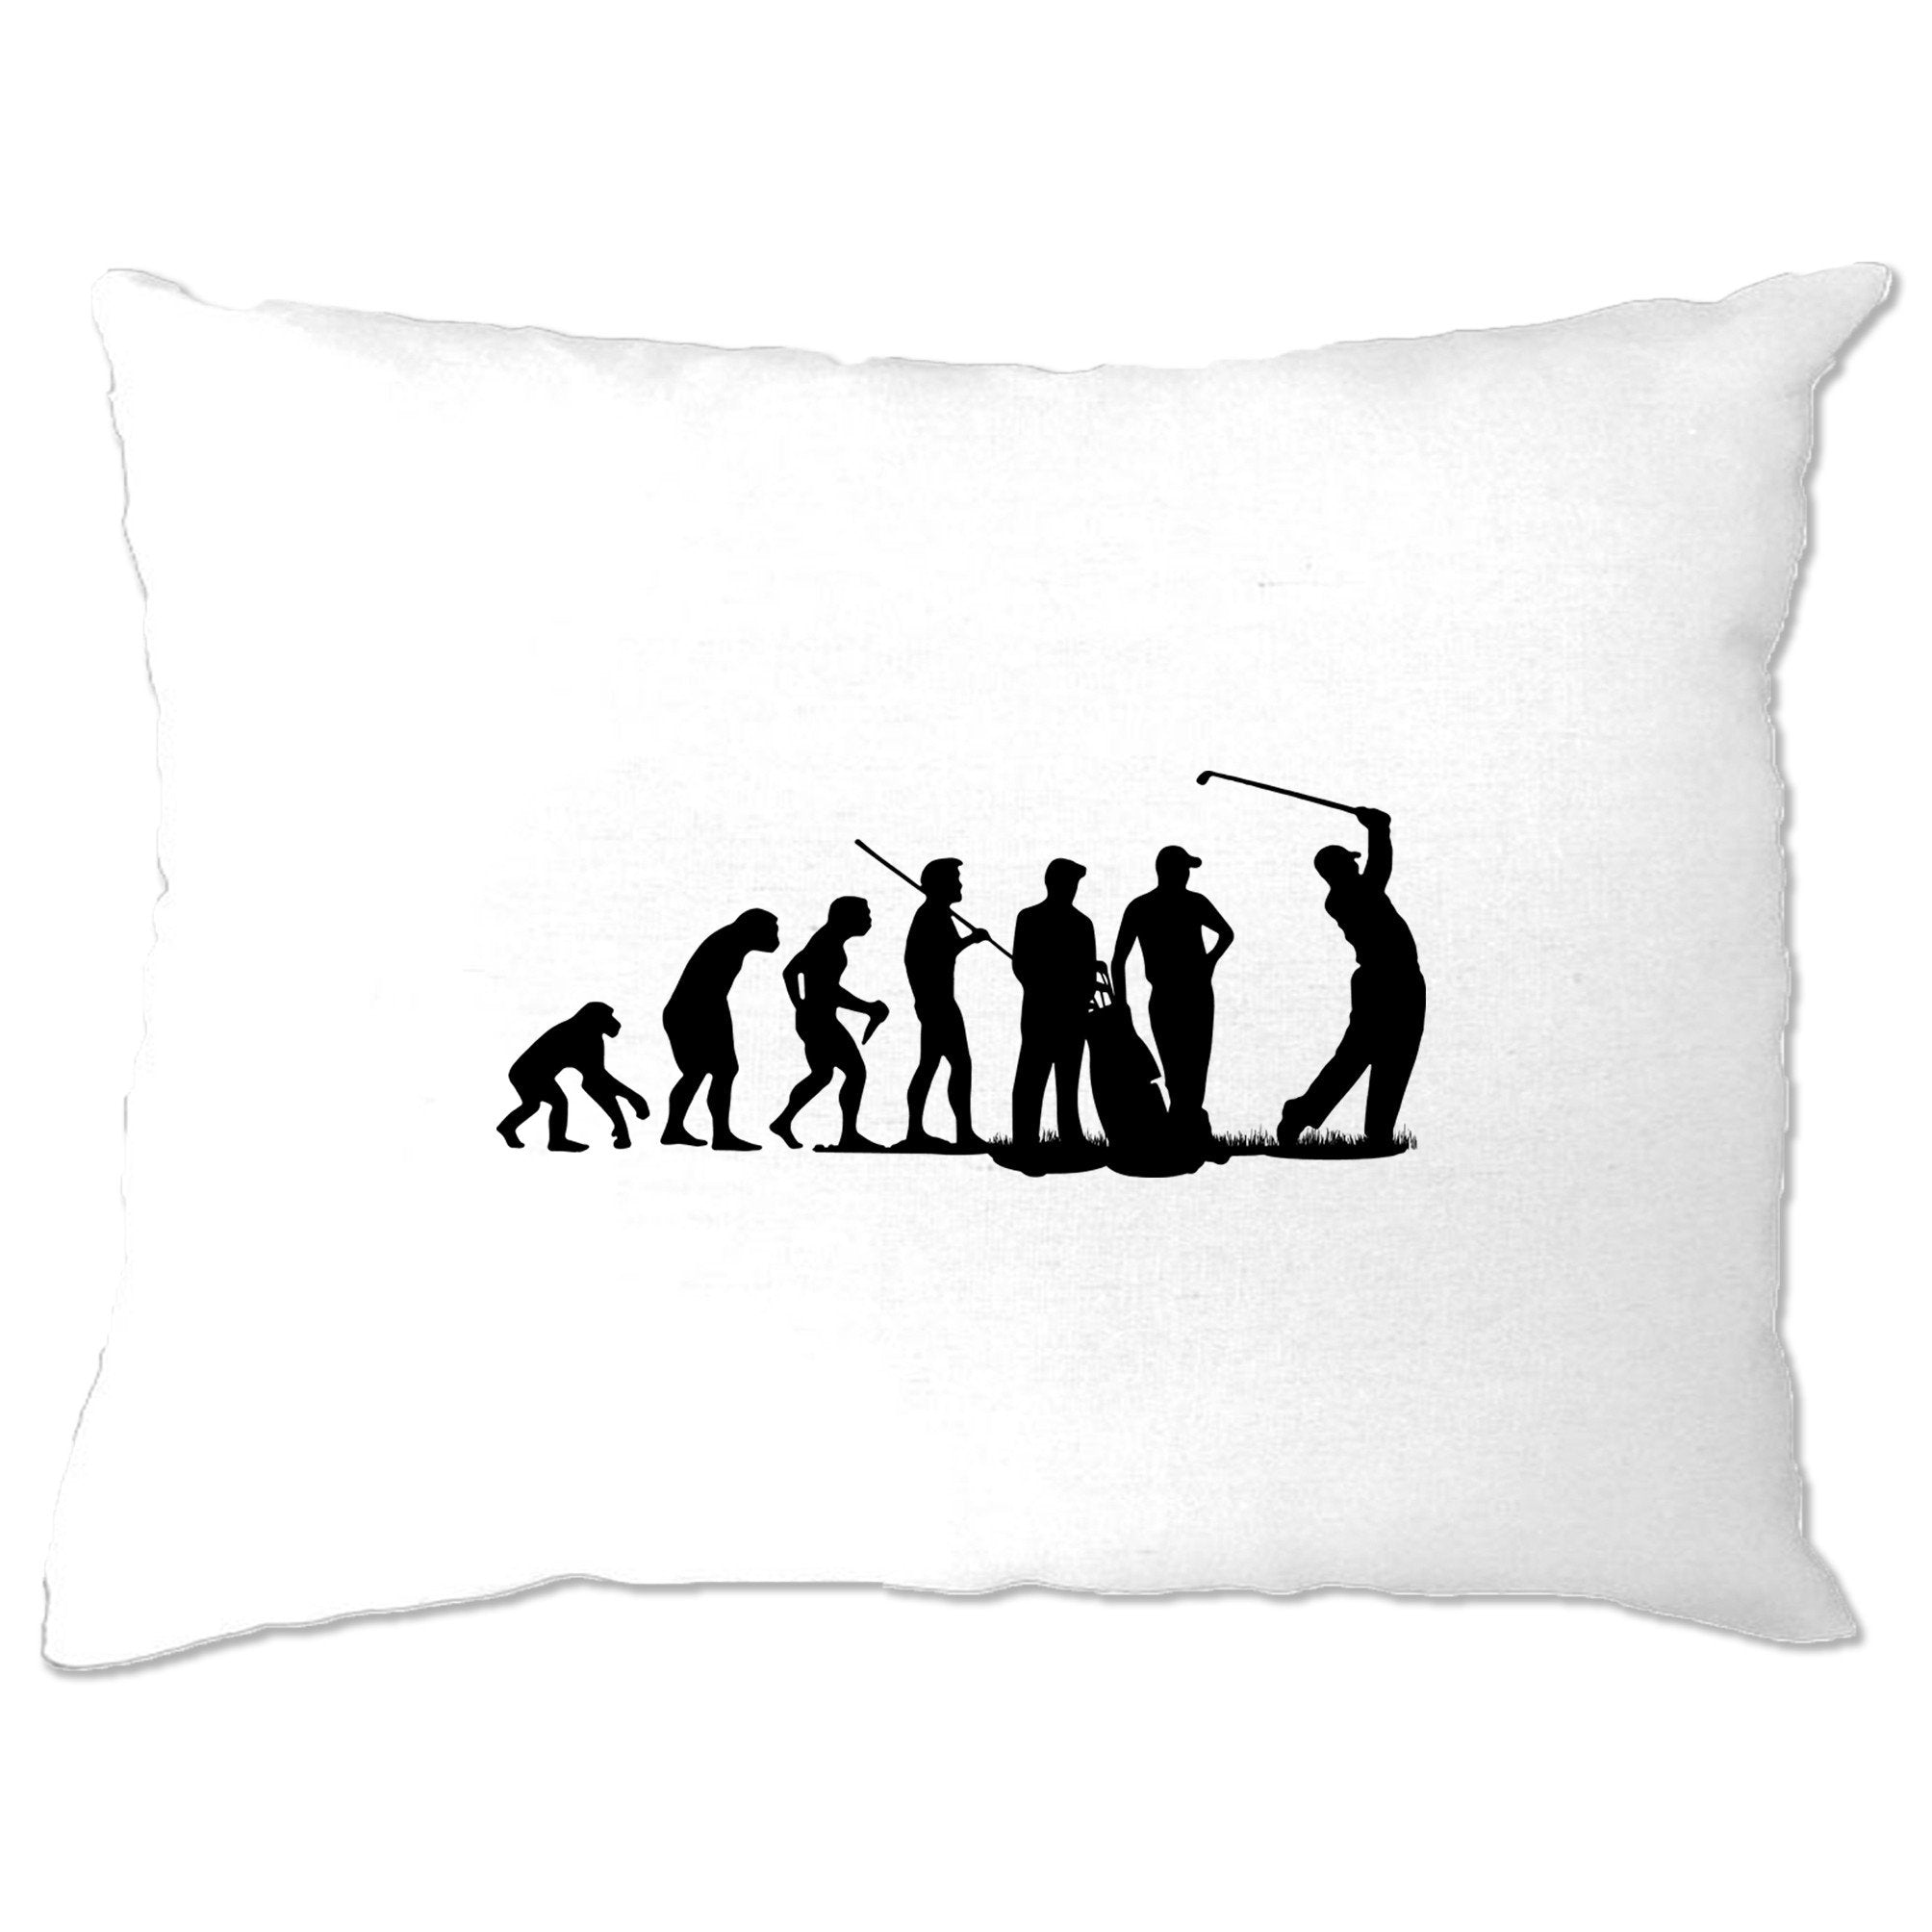 Sports Pillow Case The Evolution Of A Golfer